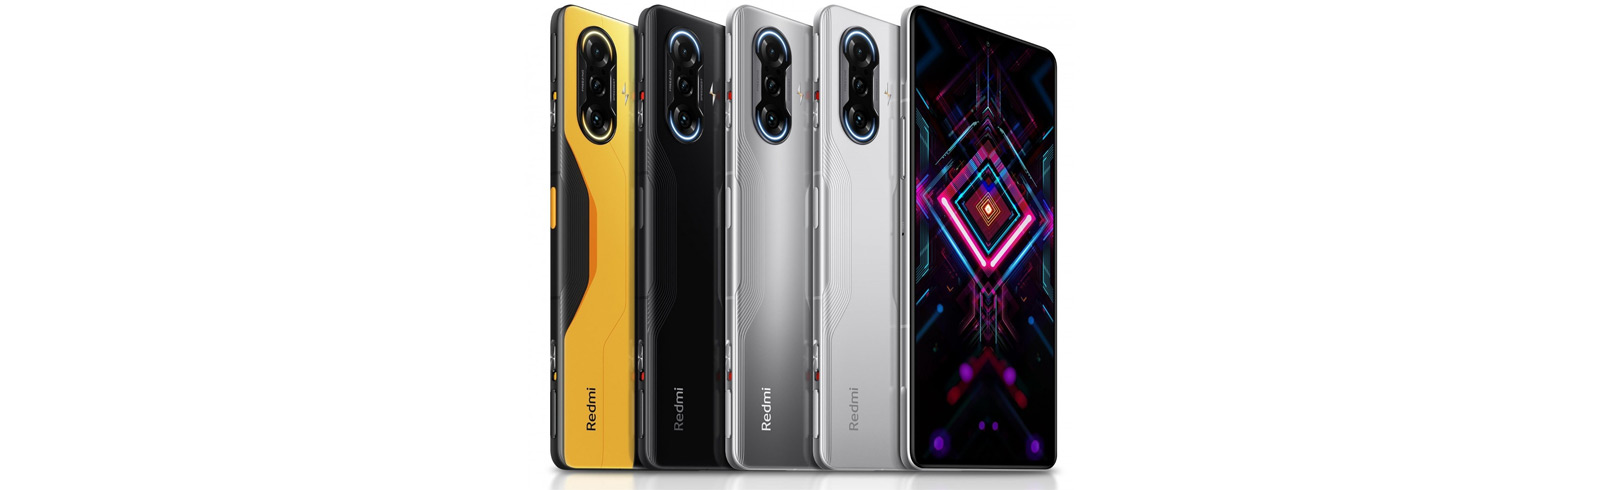 Xiaomi unveils the Redmi K40 Gaming Edition with Dimensity 1200